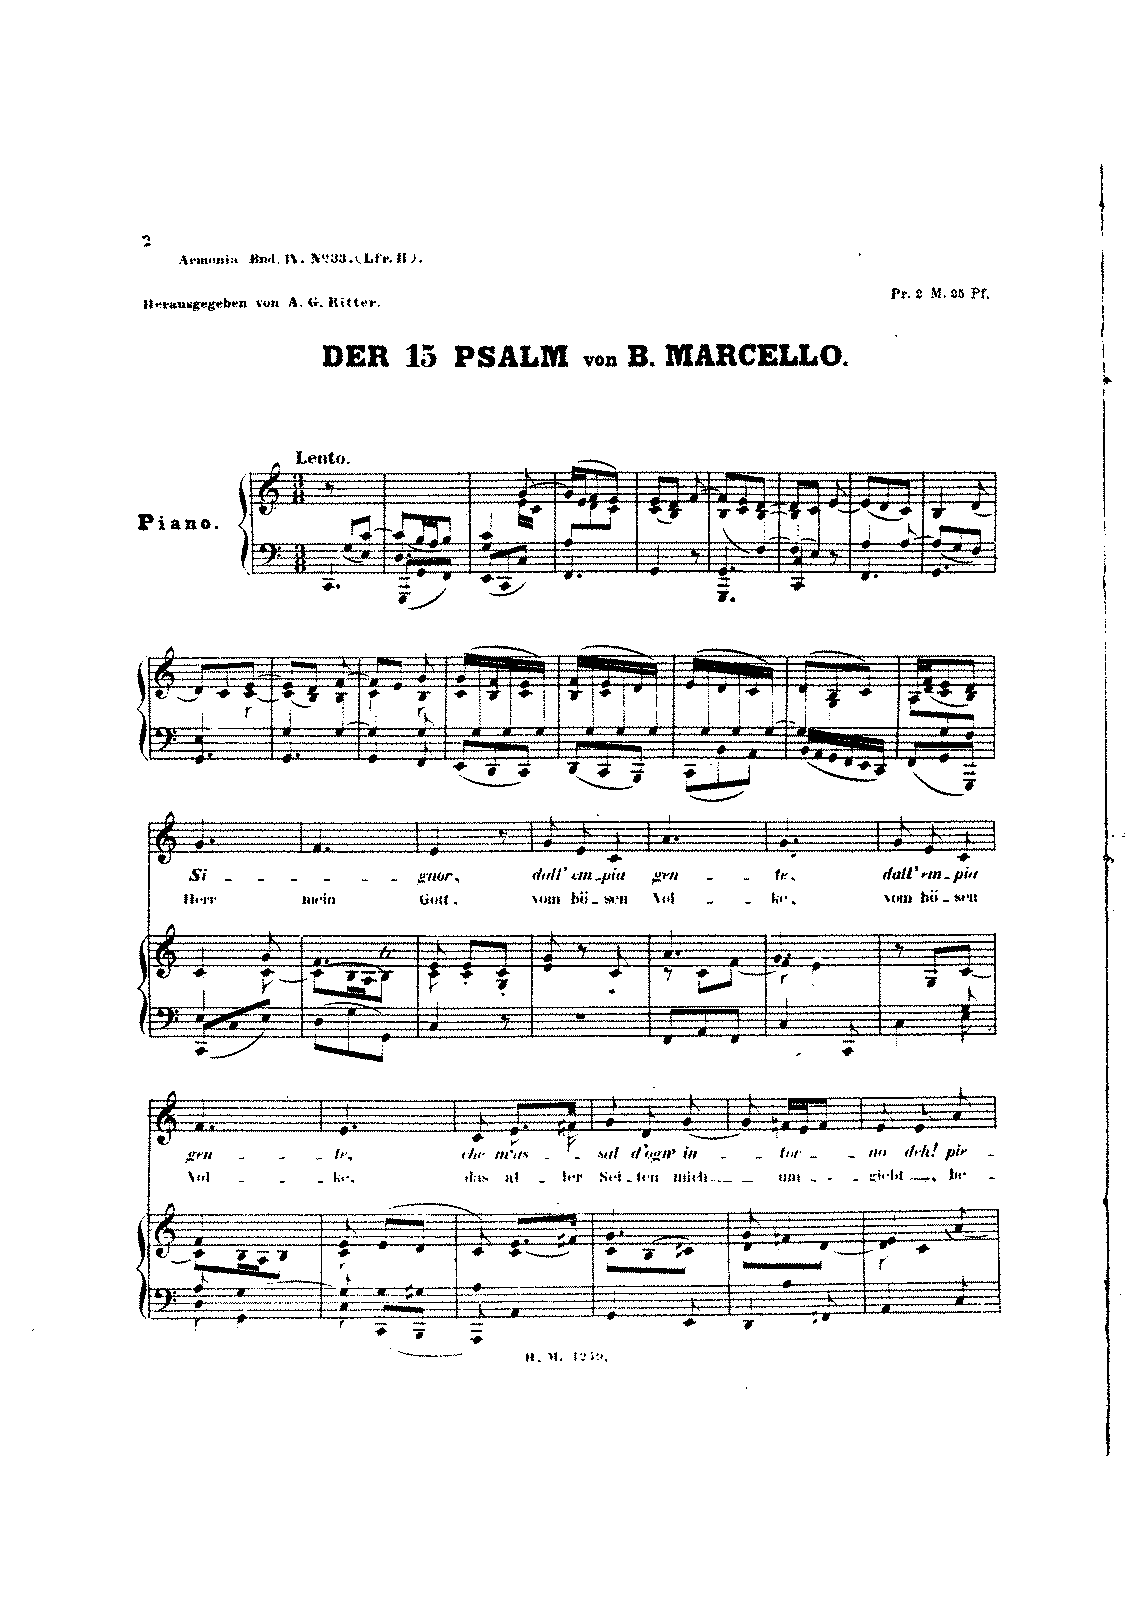 PMLP87279-B.Marcello - Psalm 15.PDF